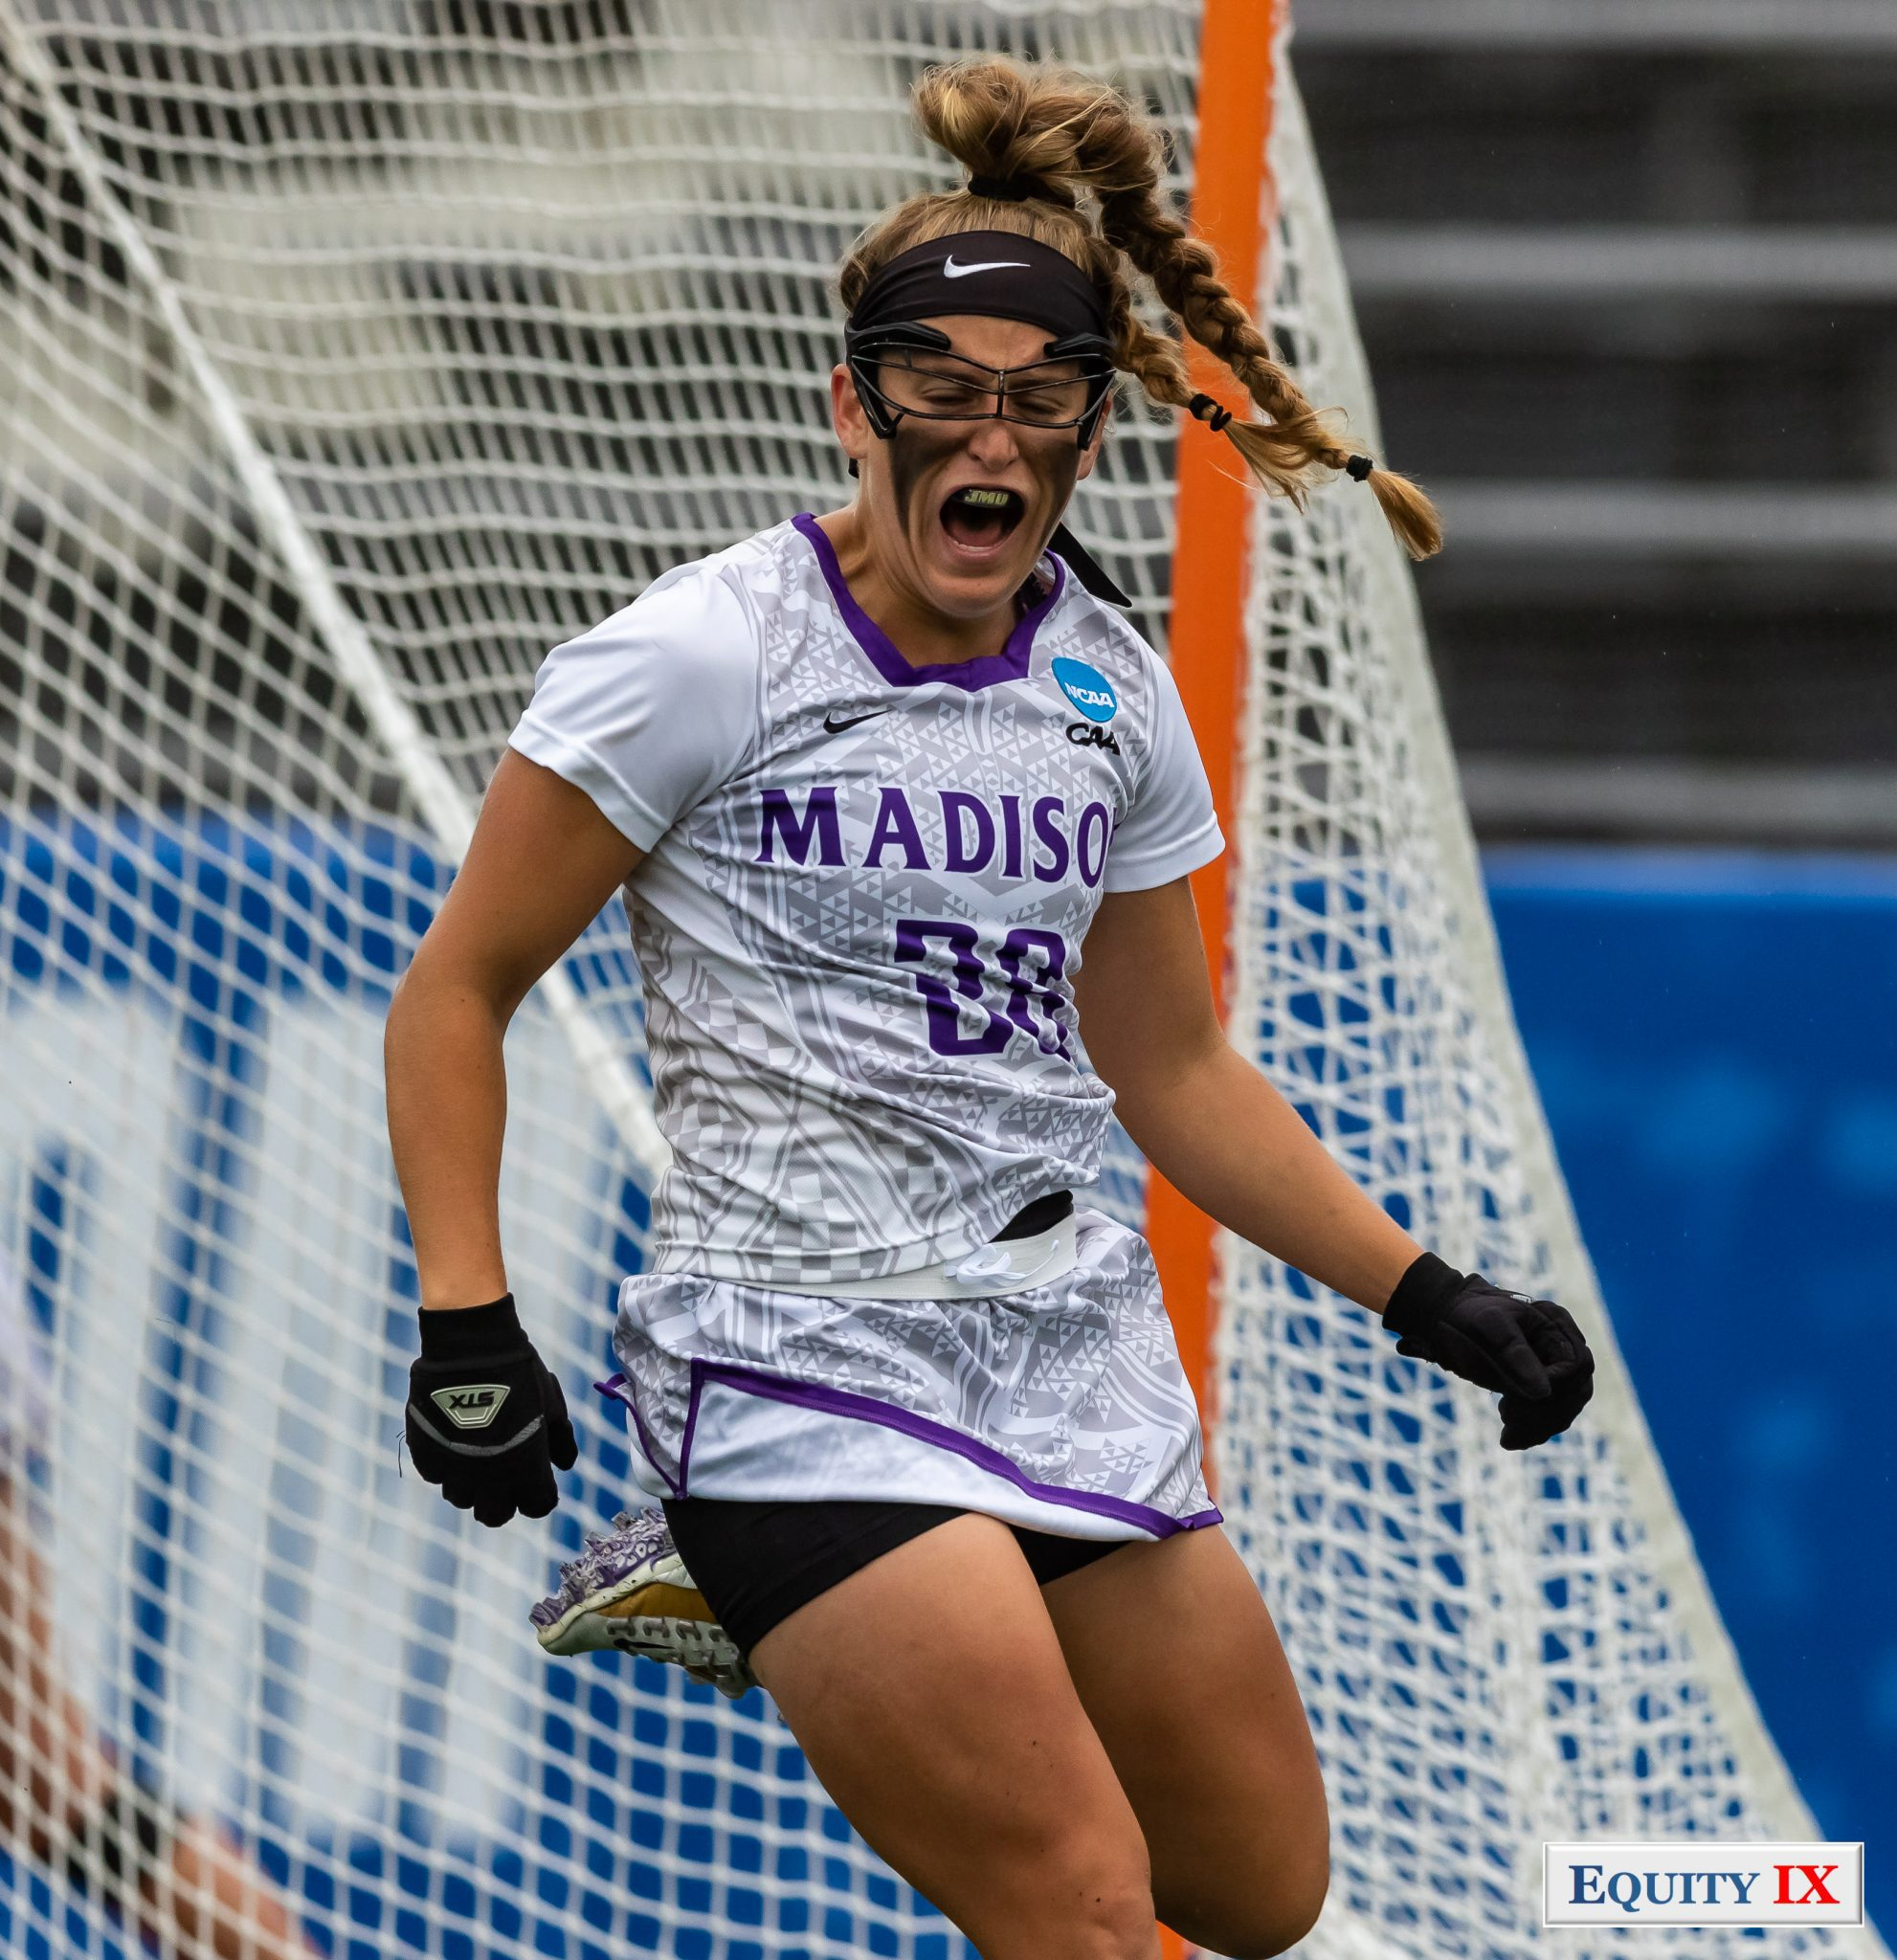 Elean Romesburg (JMU #28) celebrates scoring a goal at 2018 NCAA Women's Lacrosse Championship Game wearing goggles, eye black and black gloves © Equity IX - SportsOgram - Leigh Ernst Friestedt